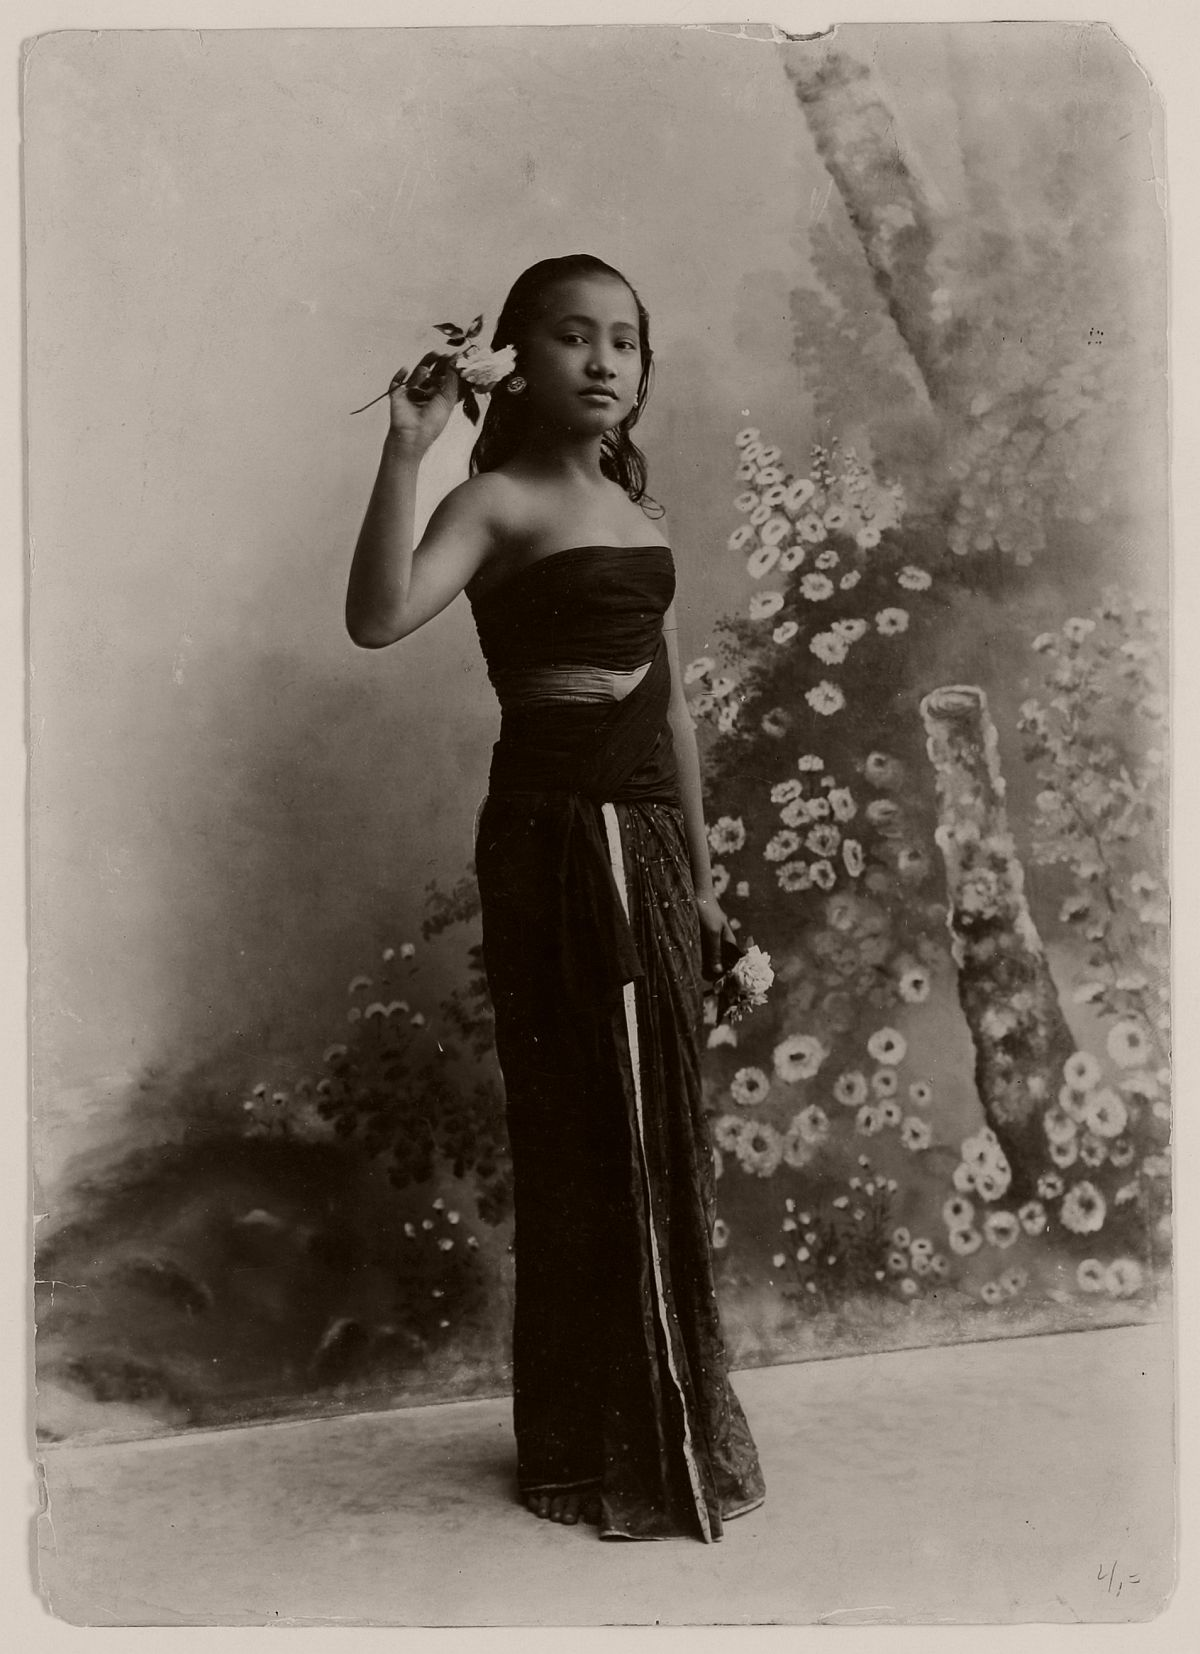 Young Javanese woman in the photo studio of Céphas at Yogyakarta, circa 1900